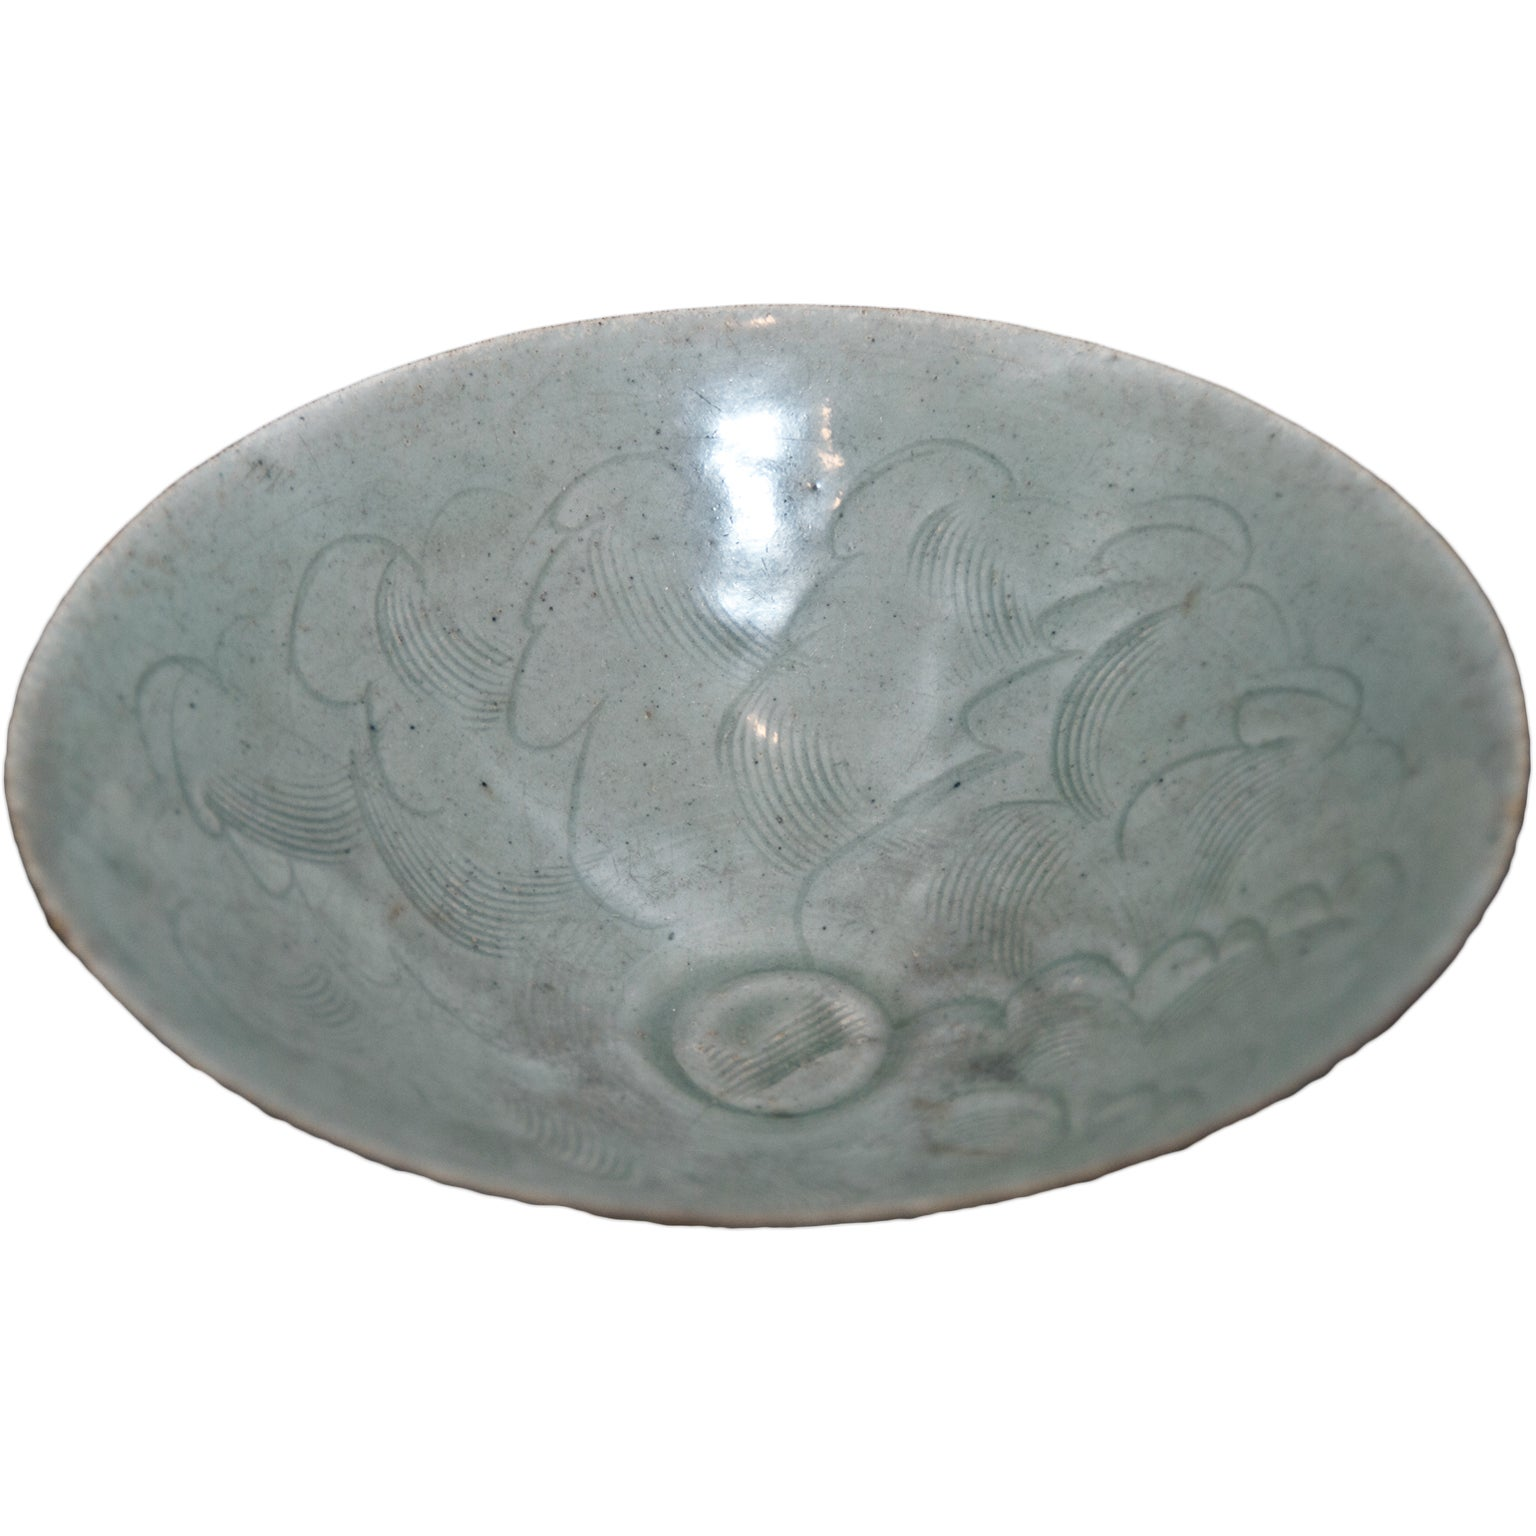 Little Circular Chinese Stoneware Bowl Sung 1 Period, 12th-14th Century